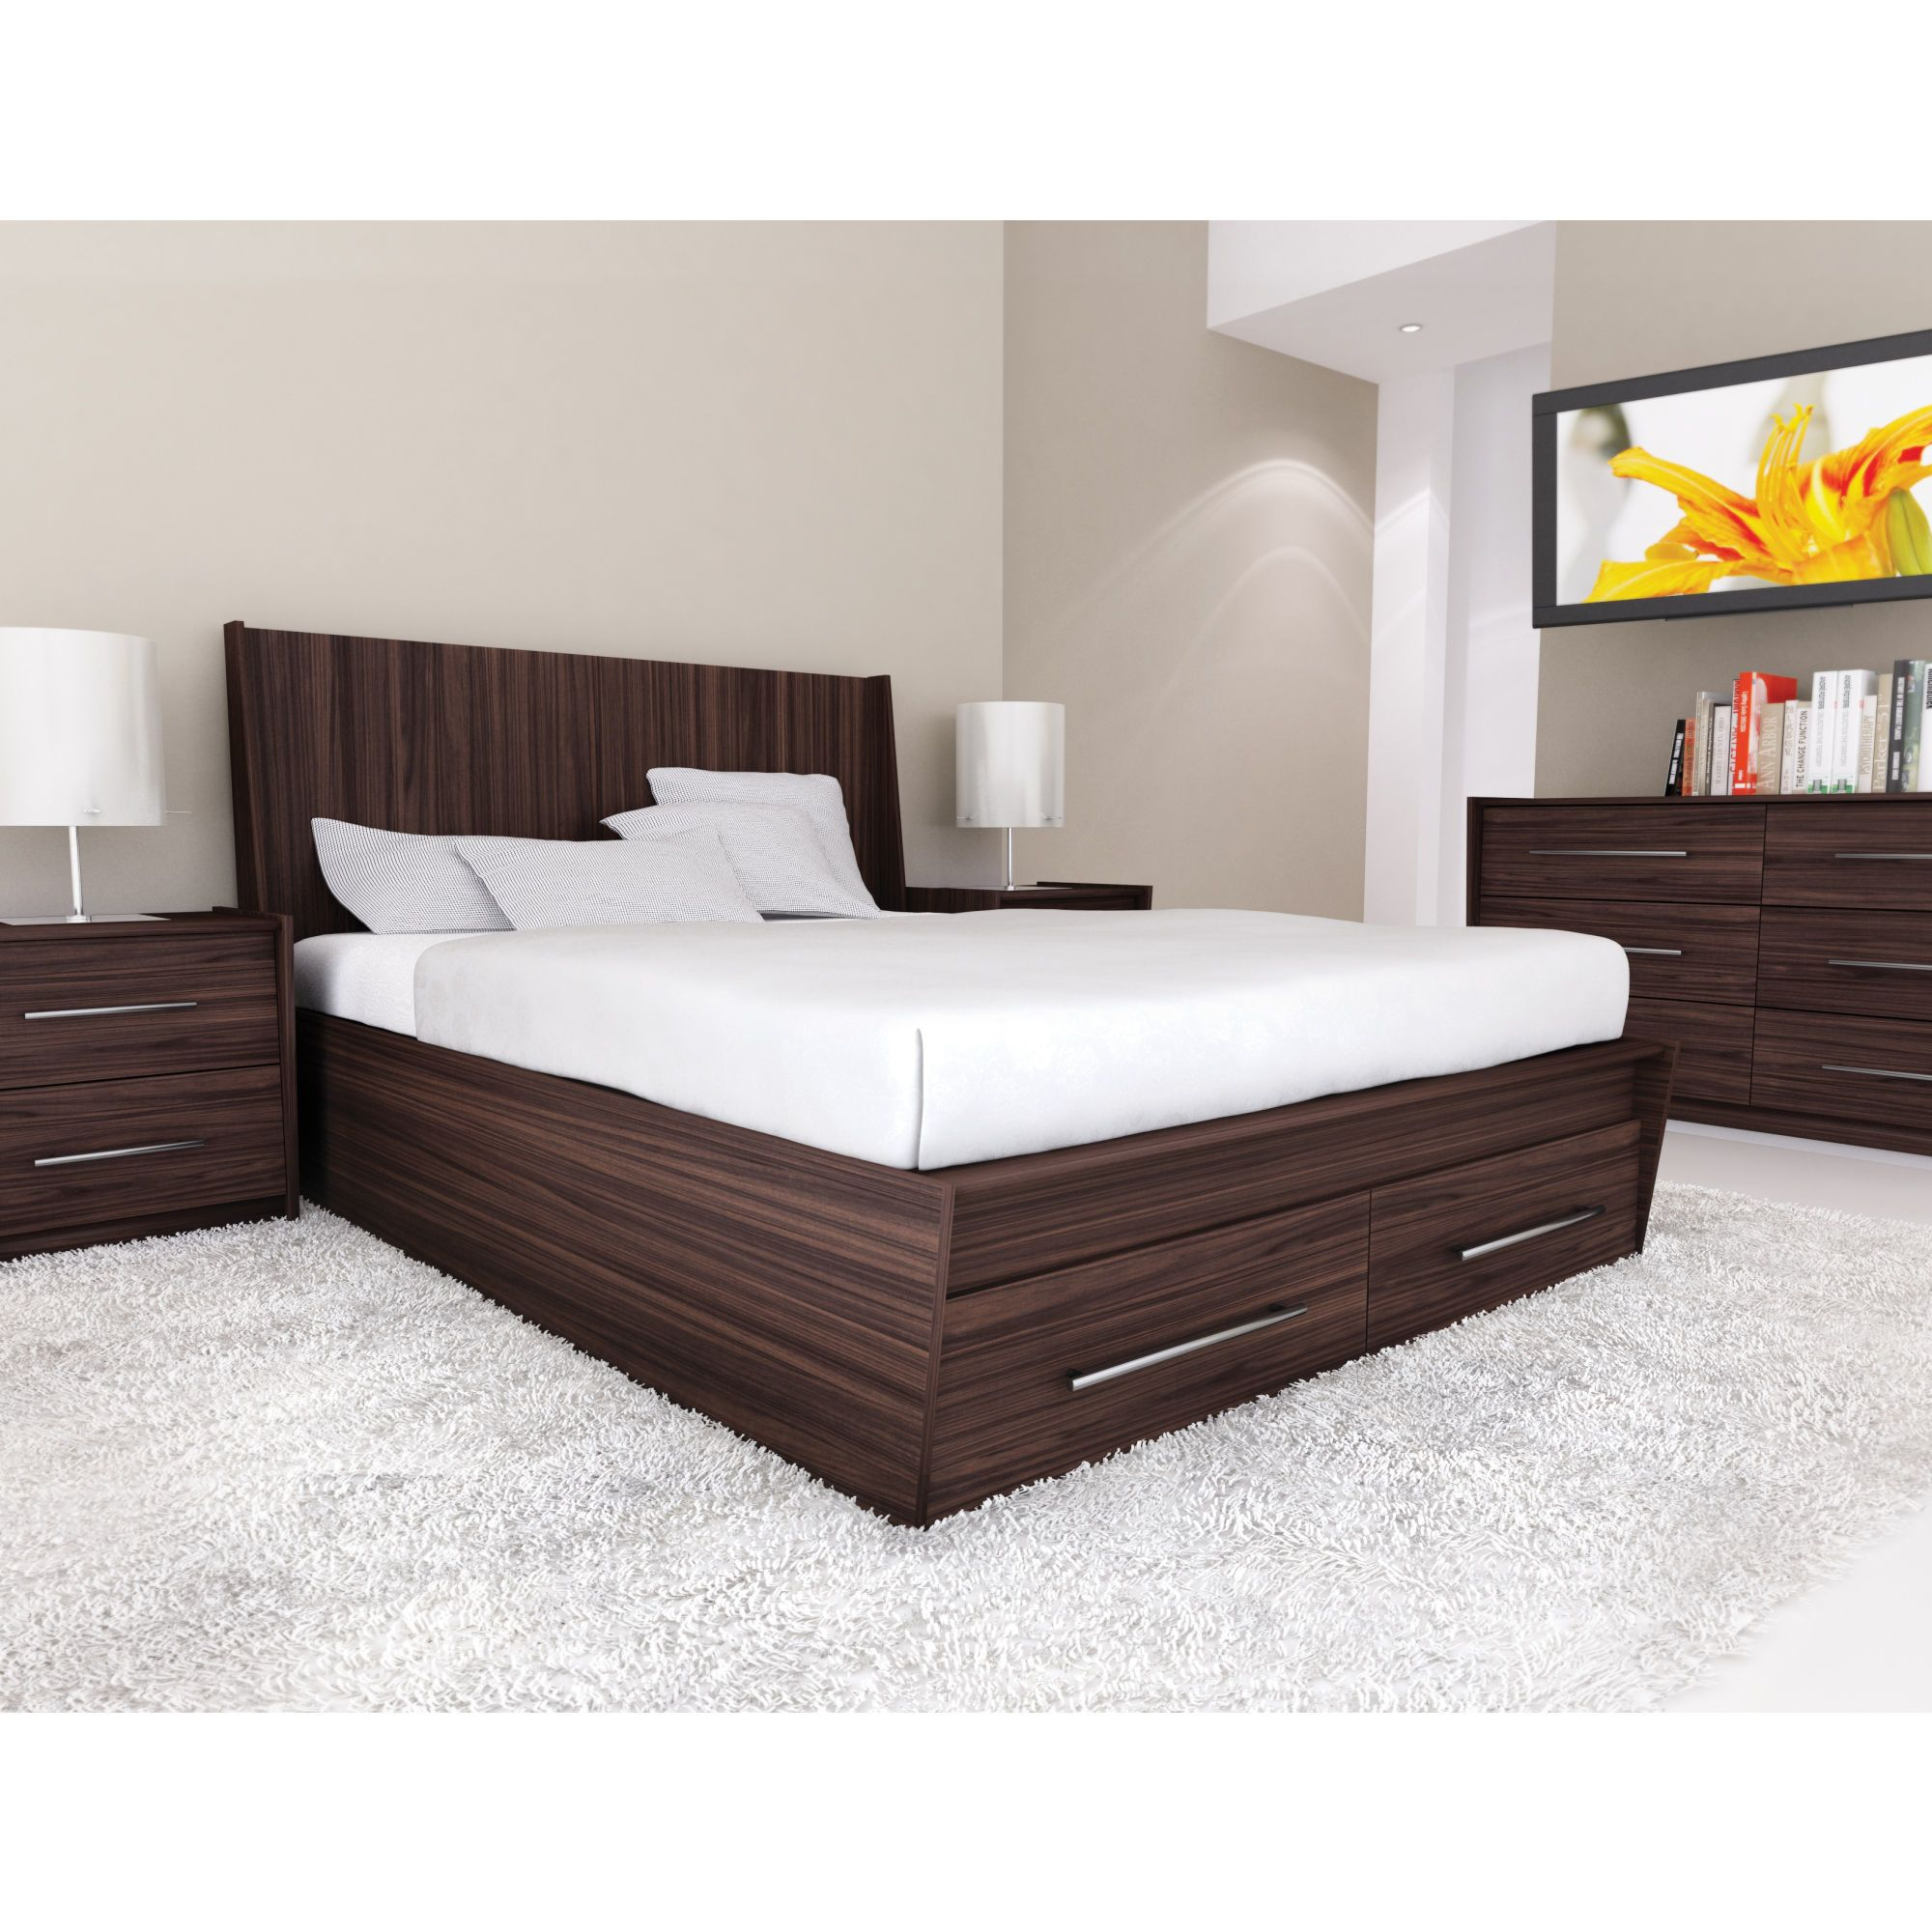 Bed designs for your comfortable bedroom interior design ideas wooden double bed designs for homes with